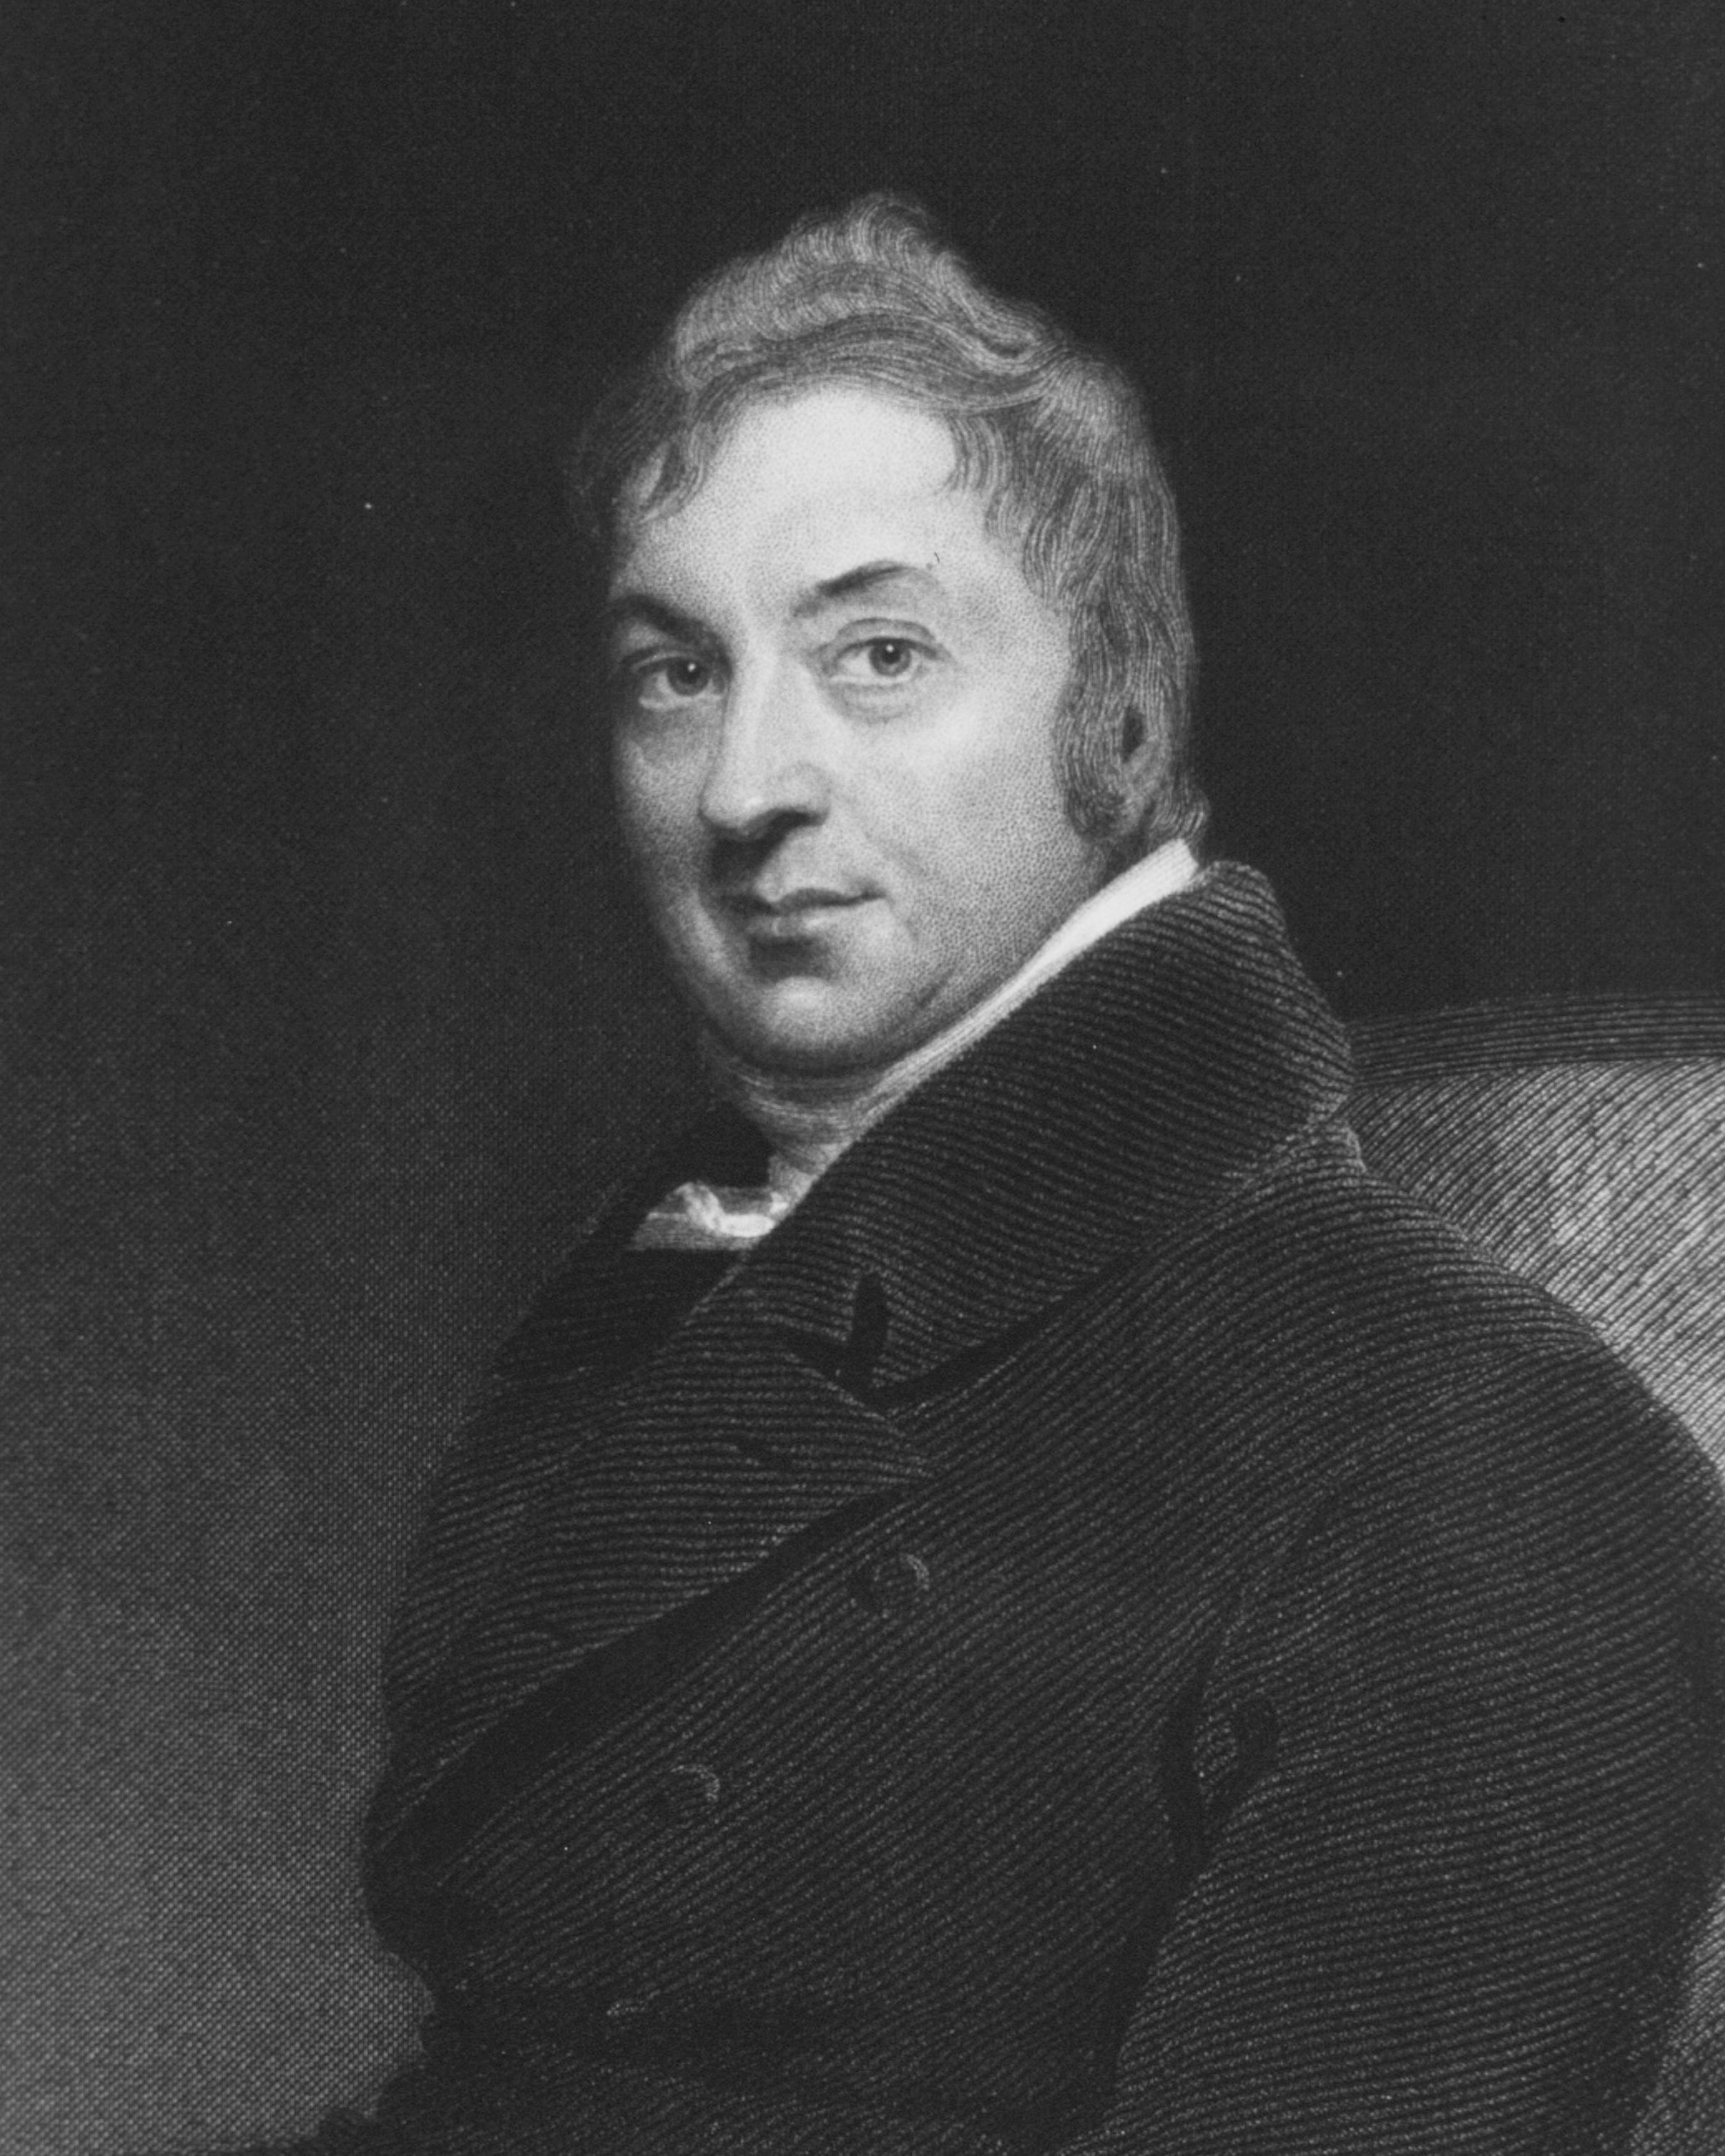 Pioneer of the Smallpox vaccine. Edward Jenner